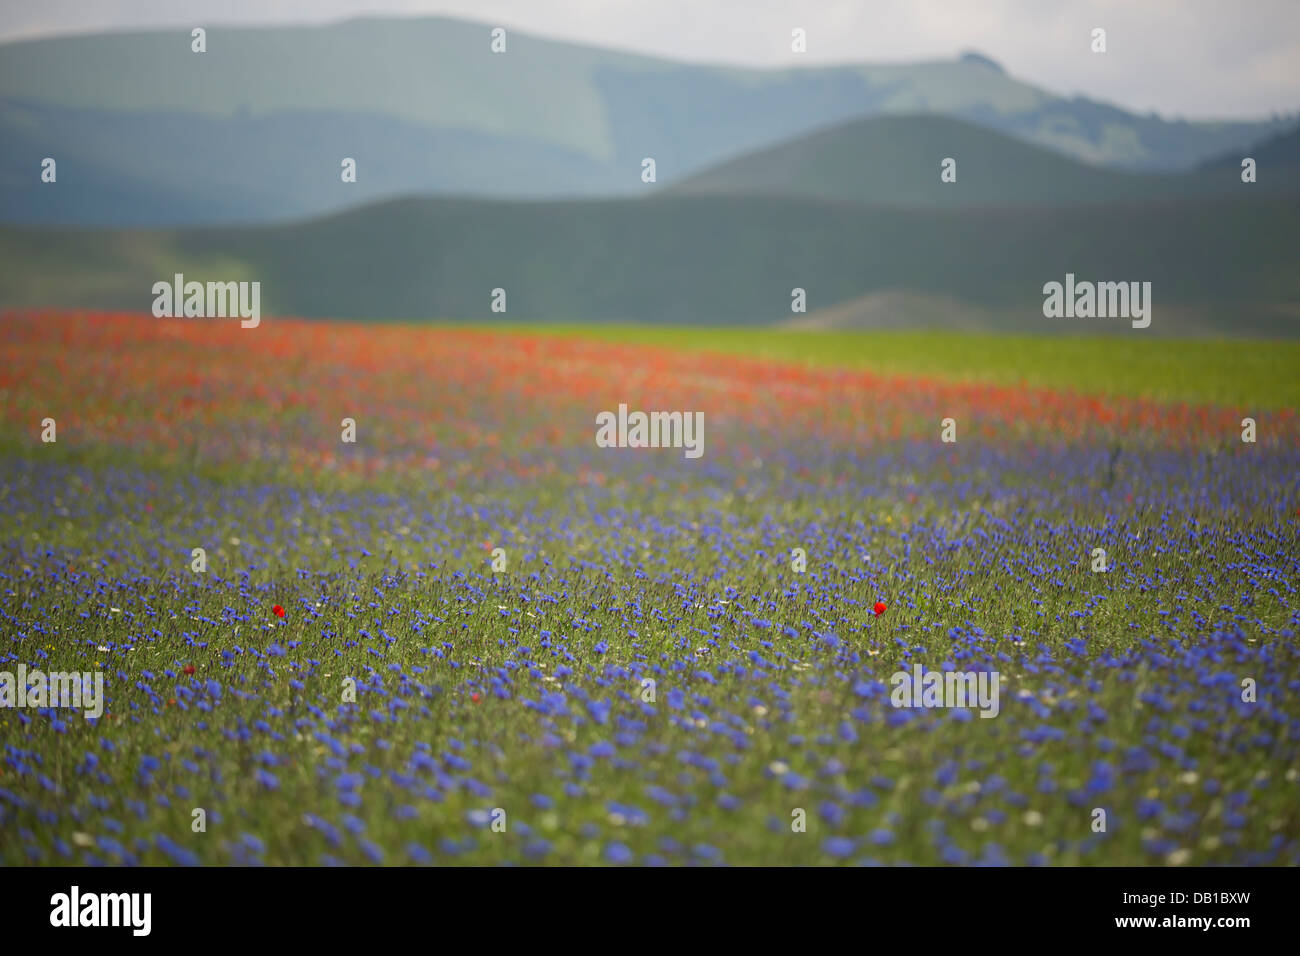 Poppy among the wild flower field of Monte Sibillini, Umbria, Italy. - Stock Image